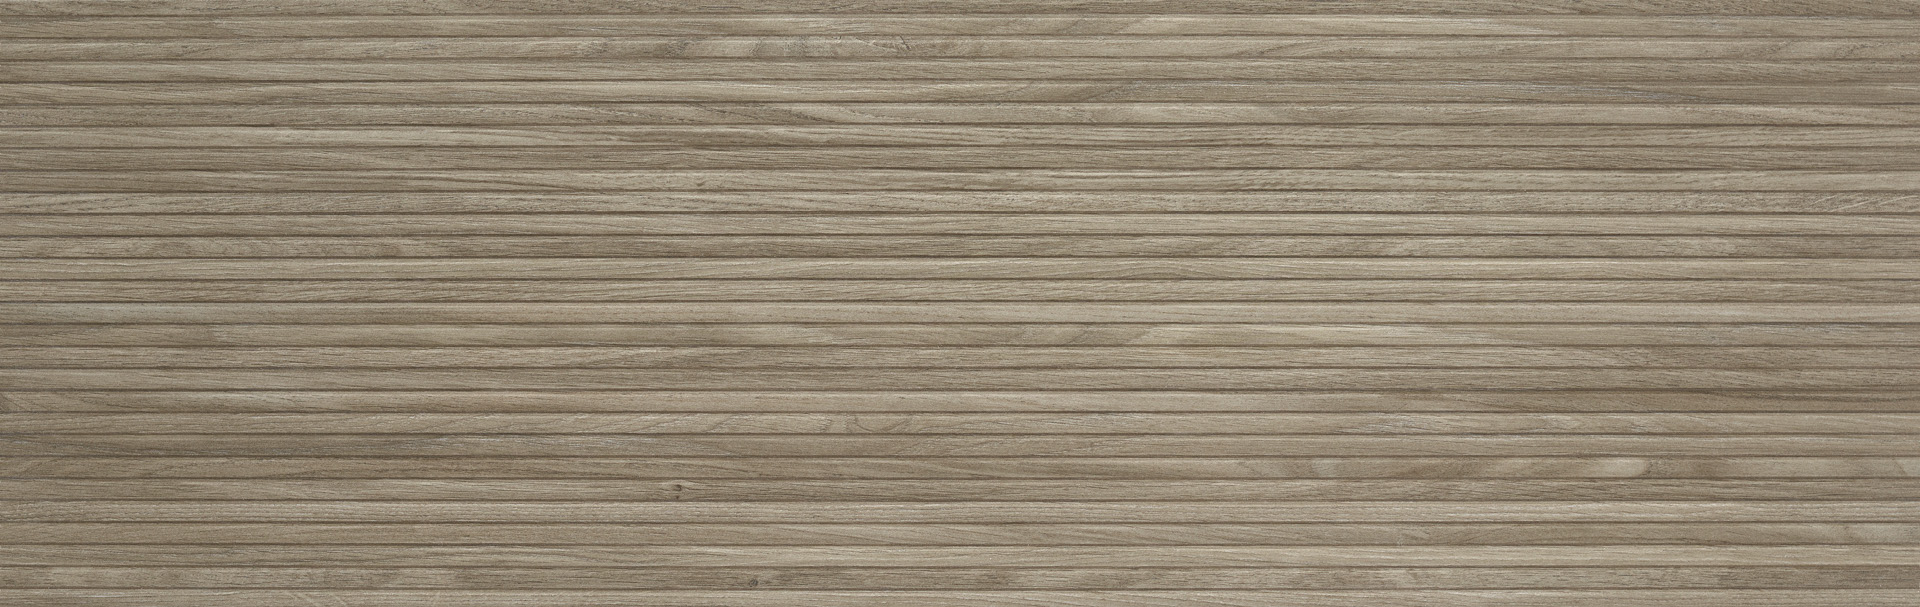 12.64  X 40 Linnear Olive textured Rectified Porcelain Tile